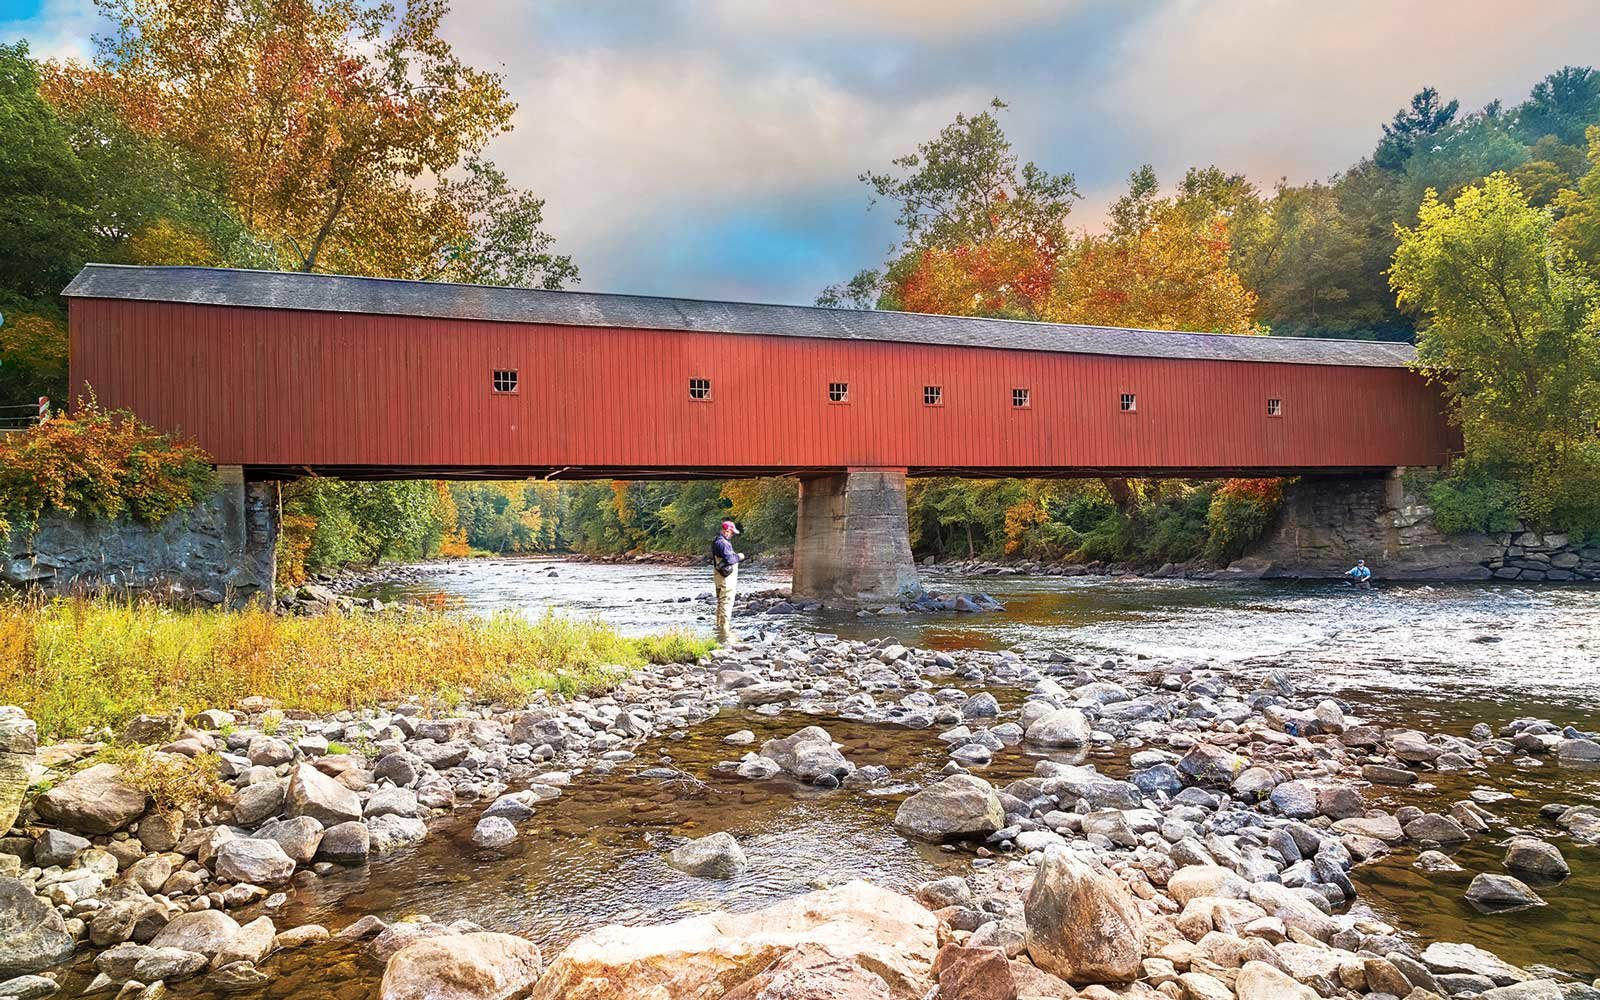 Covered Bridges in Connecticut